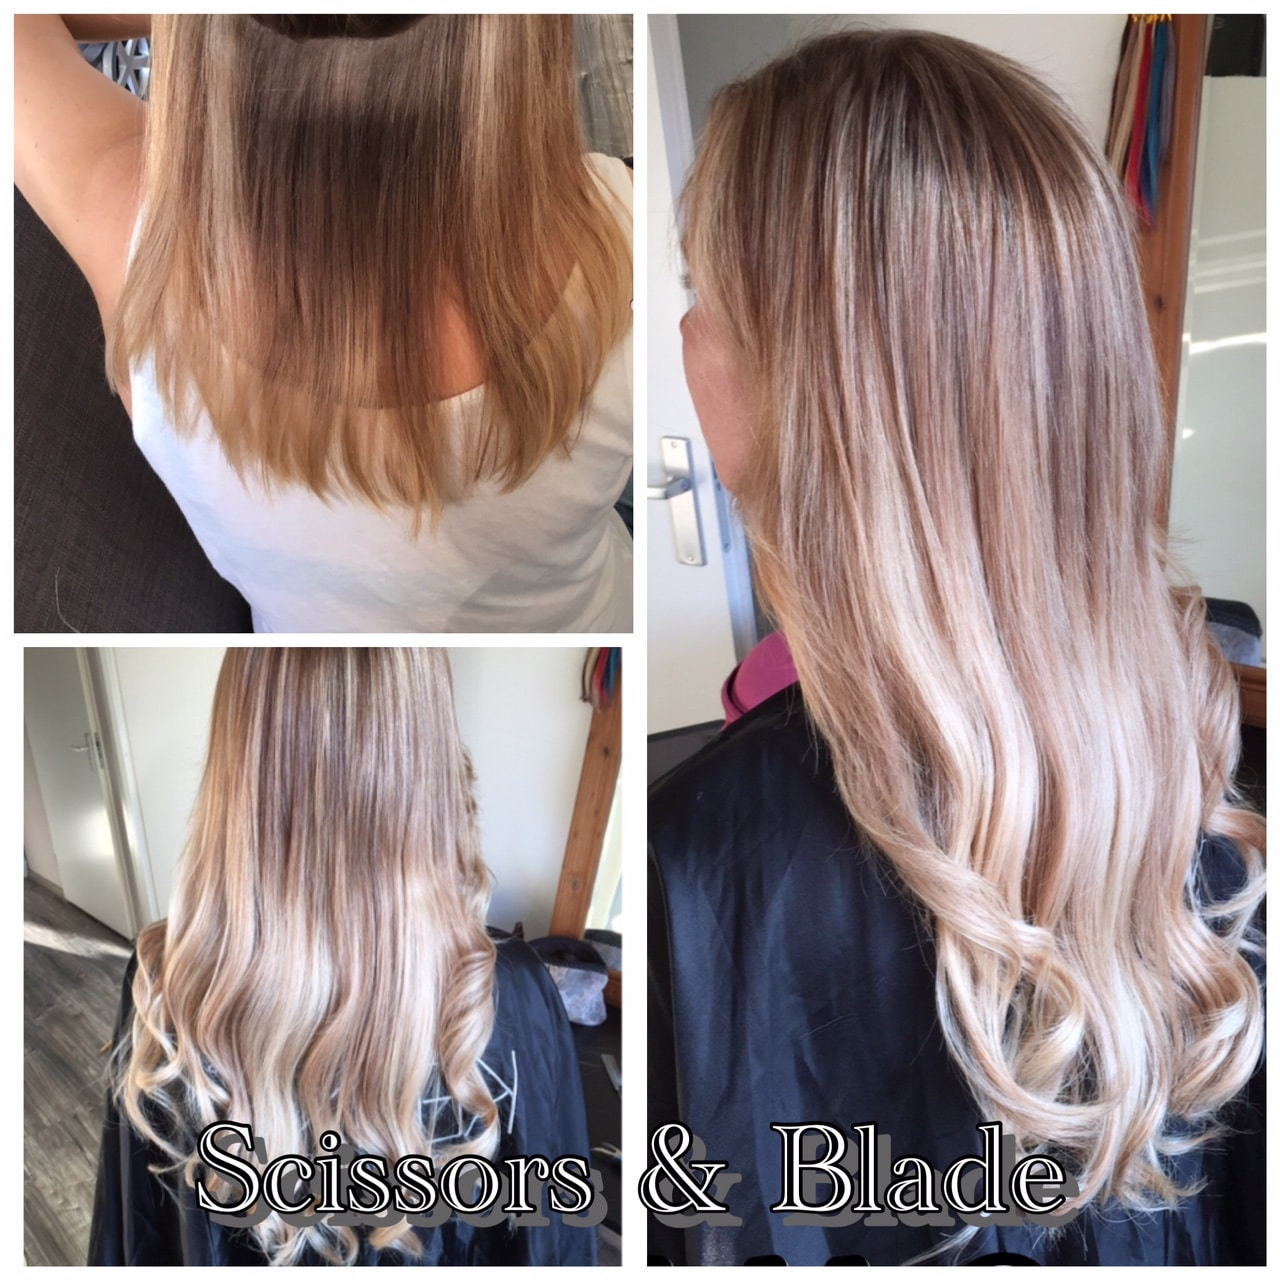 scissors-blade hairextensions